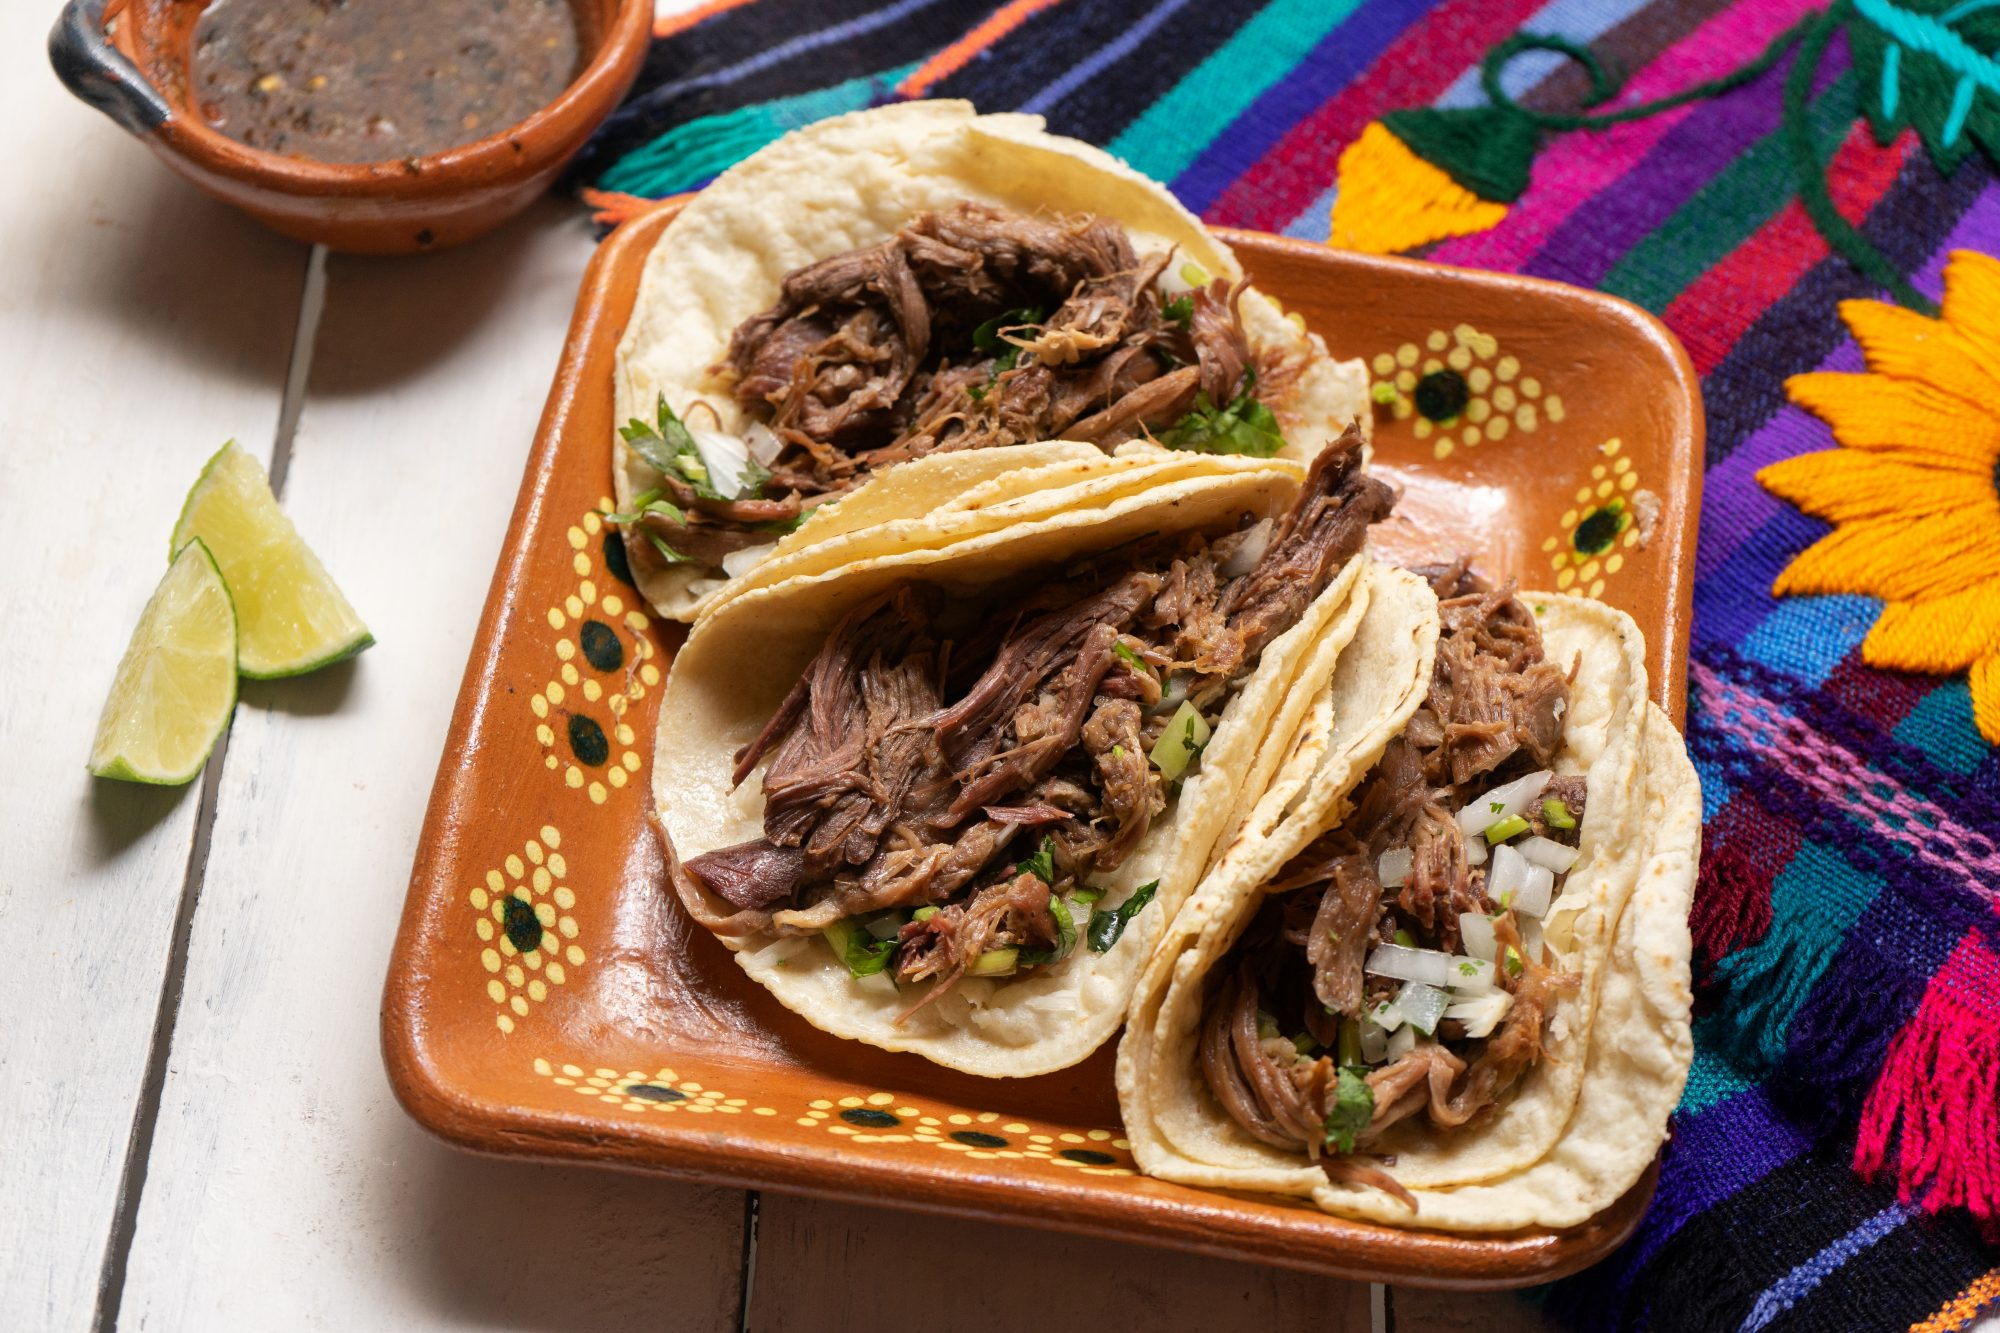 Mexican slow cooked lamb tacos also called barbacoa on white background